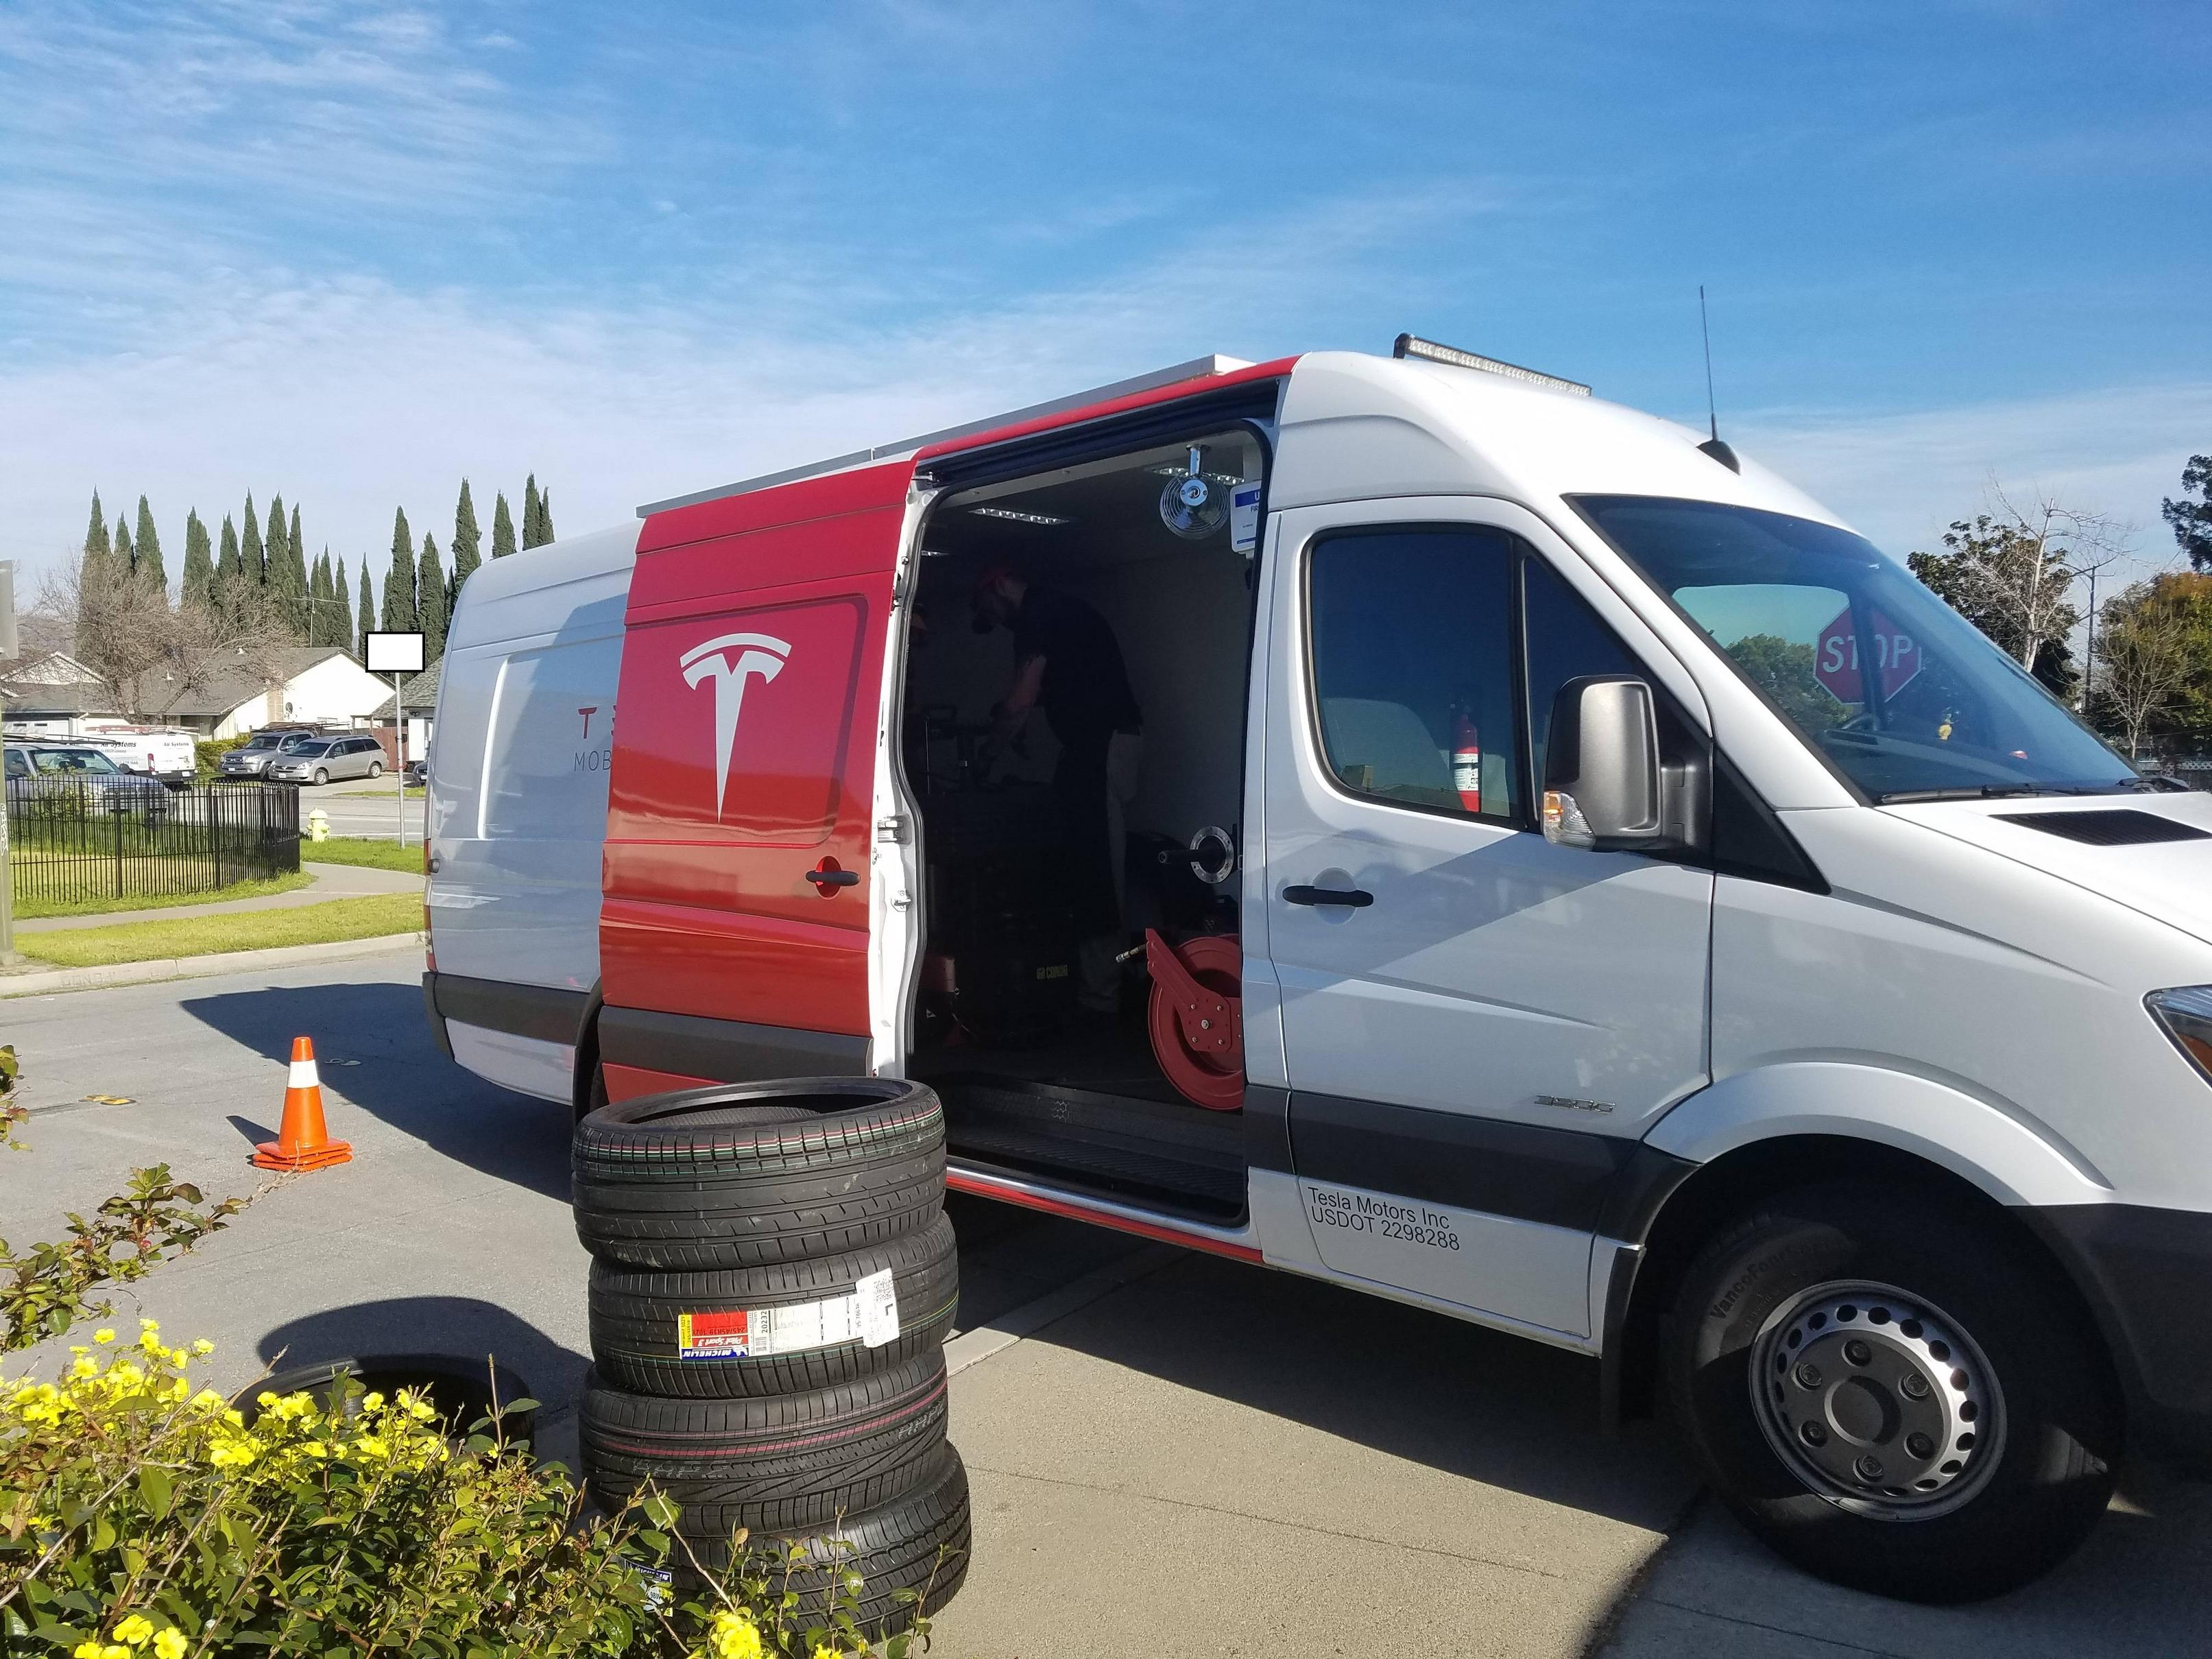 Mobile Tire Service >> Tesla Launches Mobile Tire Service Program In San Francisco To Help